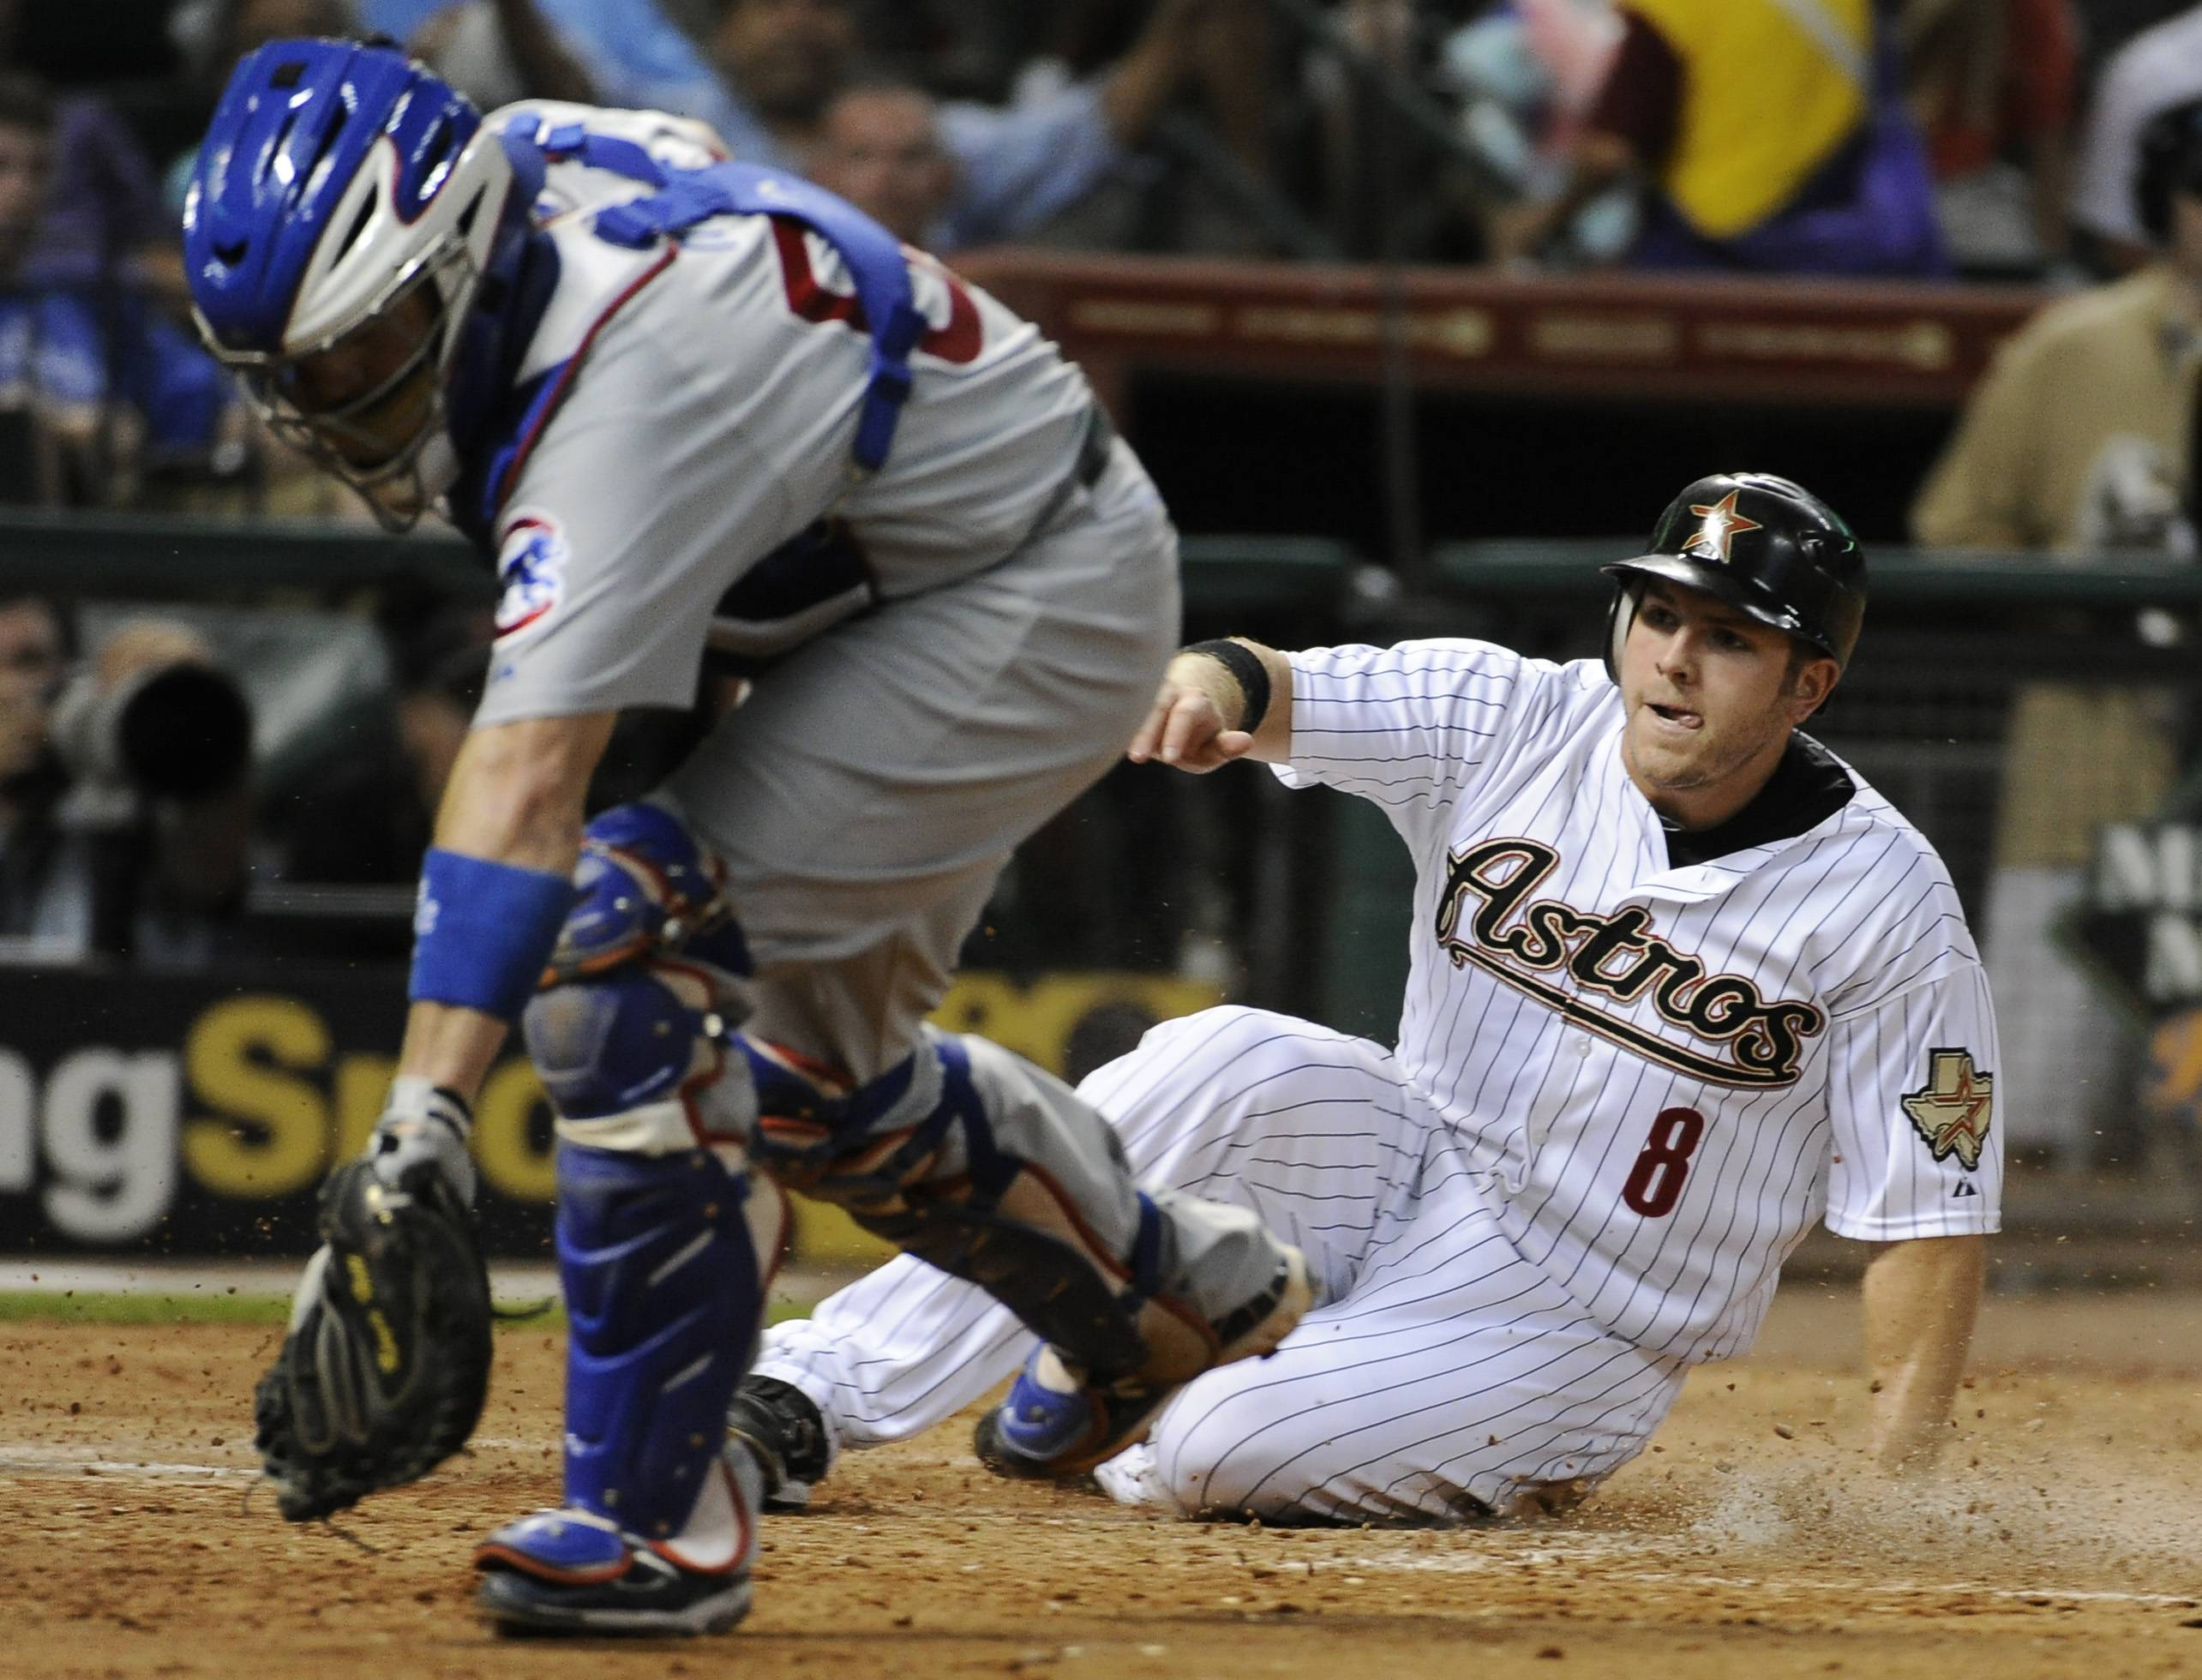 Houston Astros' J.B. Shuck (8) slides into home plate as Chicago Cubs catcher Koyie Hill chases the ball Tuesday during the seventh inning in Houston. Shuck scored from third base on a Humberto Quintero sacrifice fly.